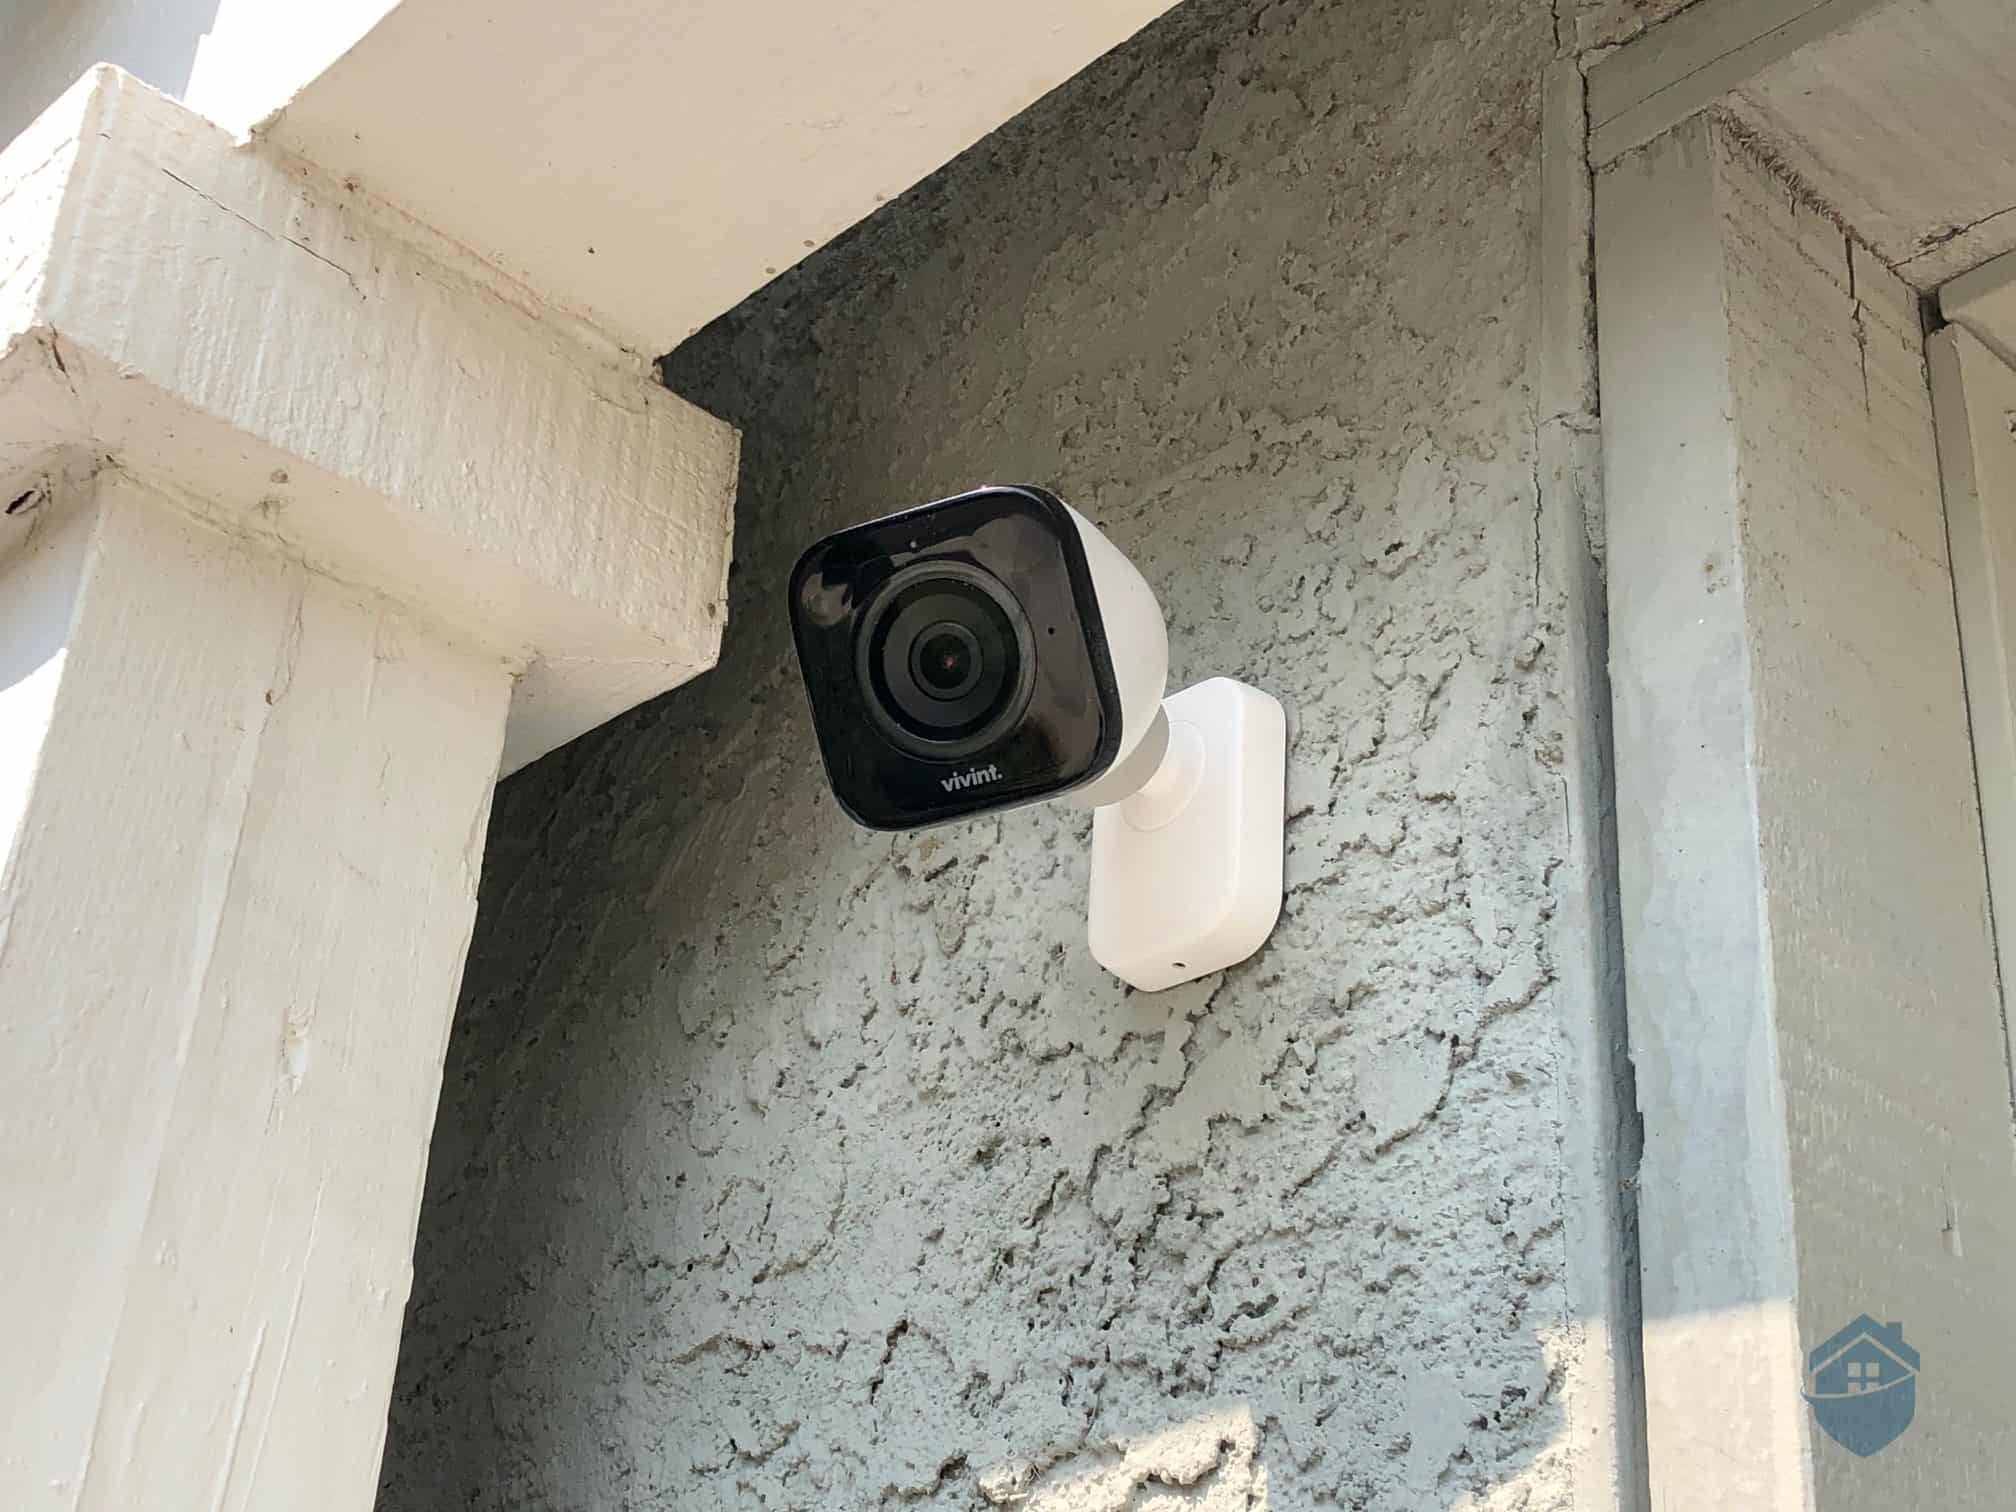 Vivint Outdoor Camera - Installed